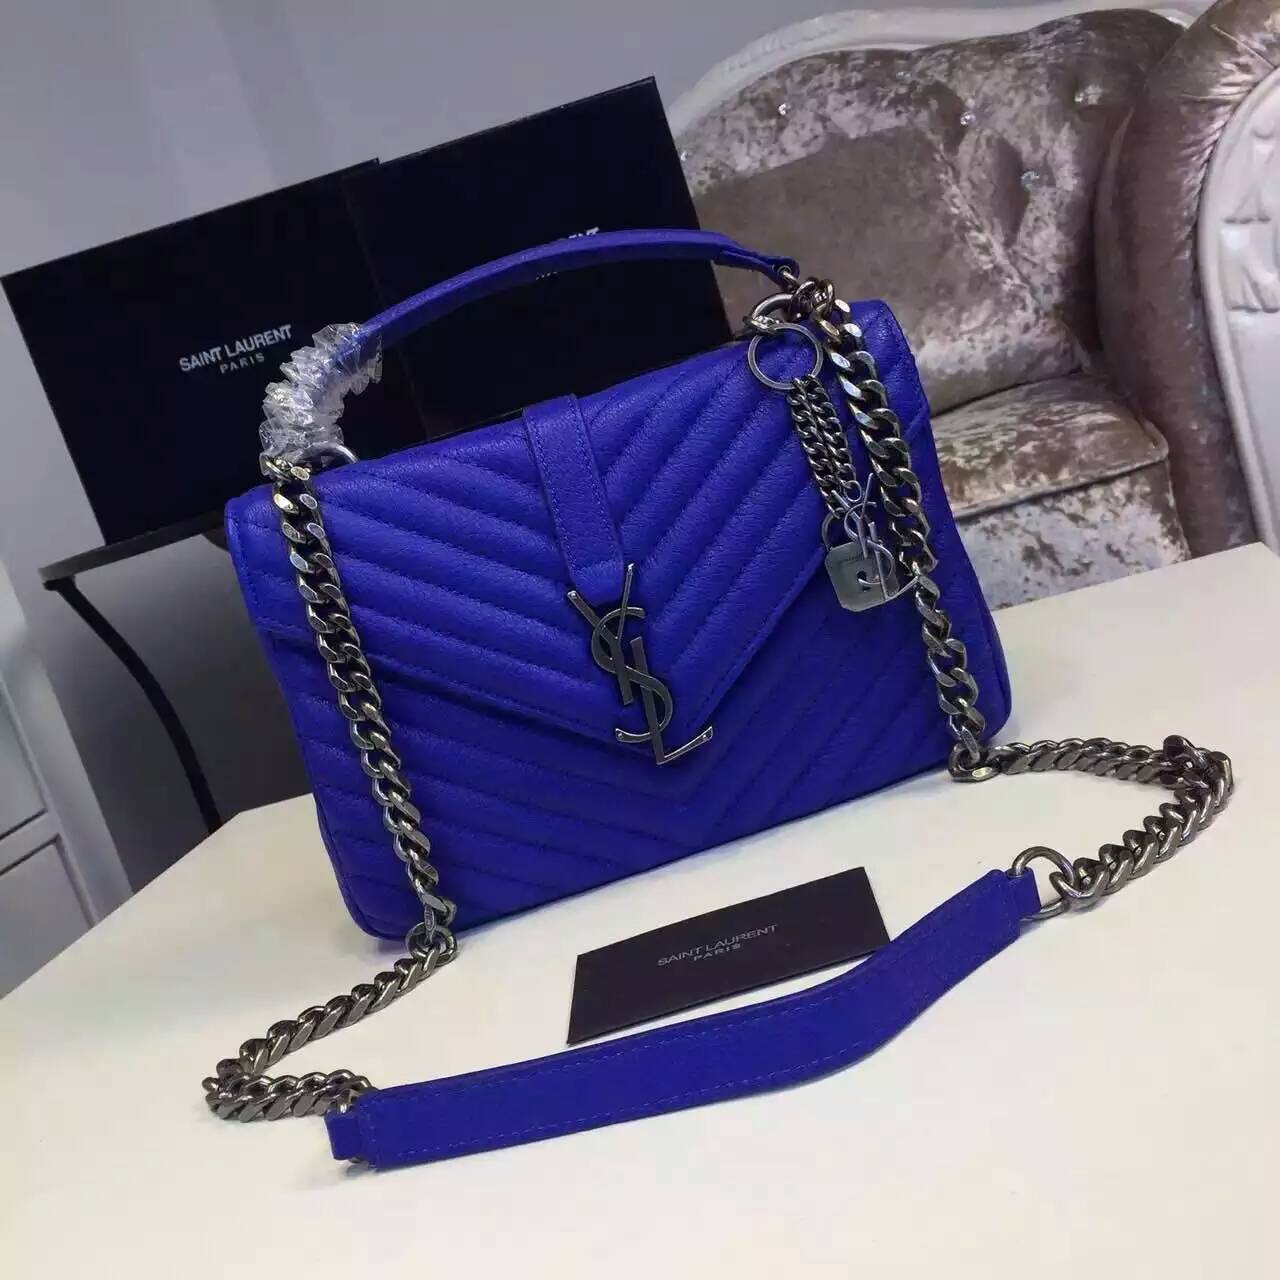 fcff64a9e59 Discount information for YSL Bags - YSL Bags Outlet|YSL Muse 2013